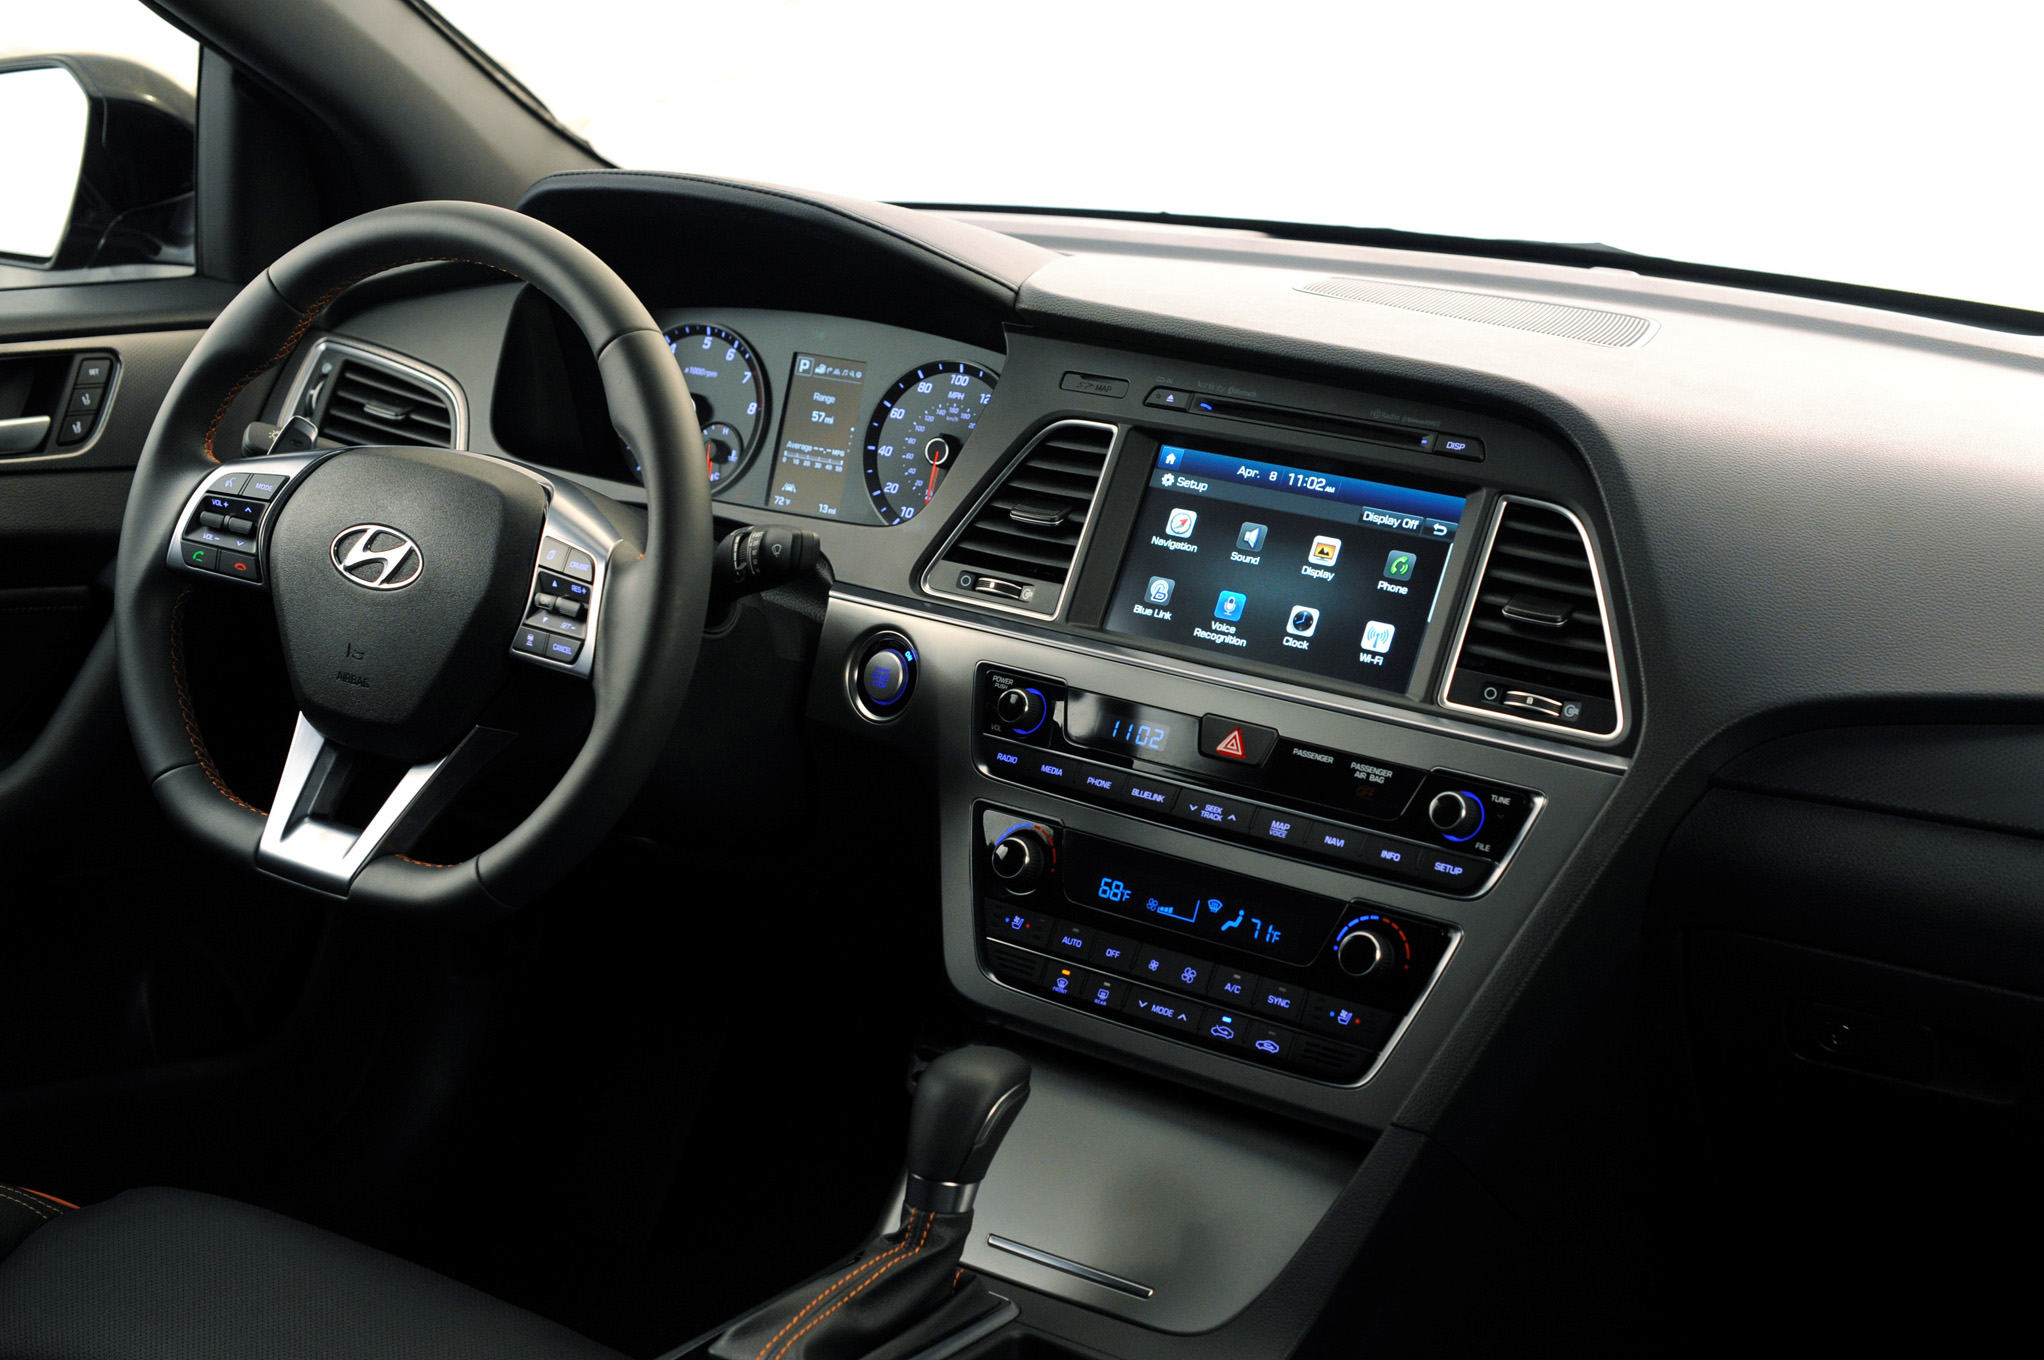 Hyundai Sonata 2015 To Integrate Carplay And Android Auto In Dash Infotainment Telematicswire